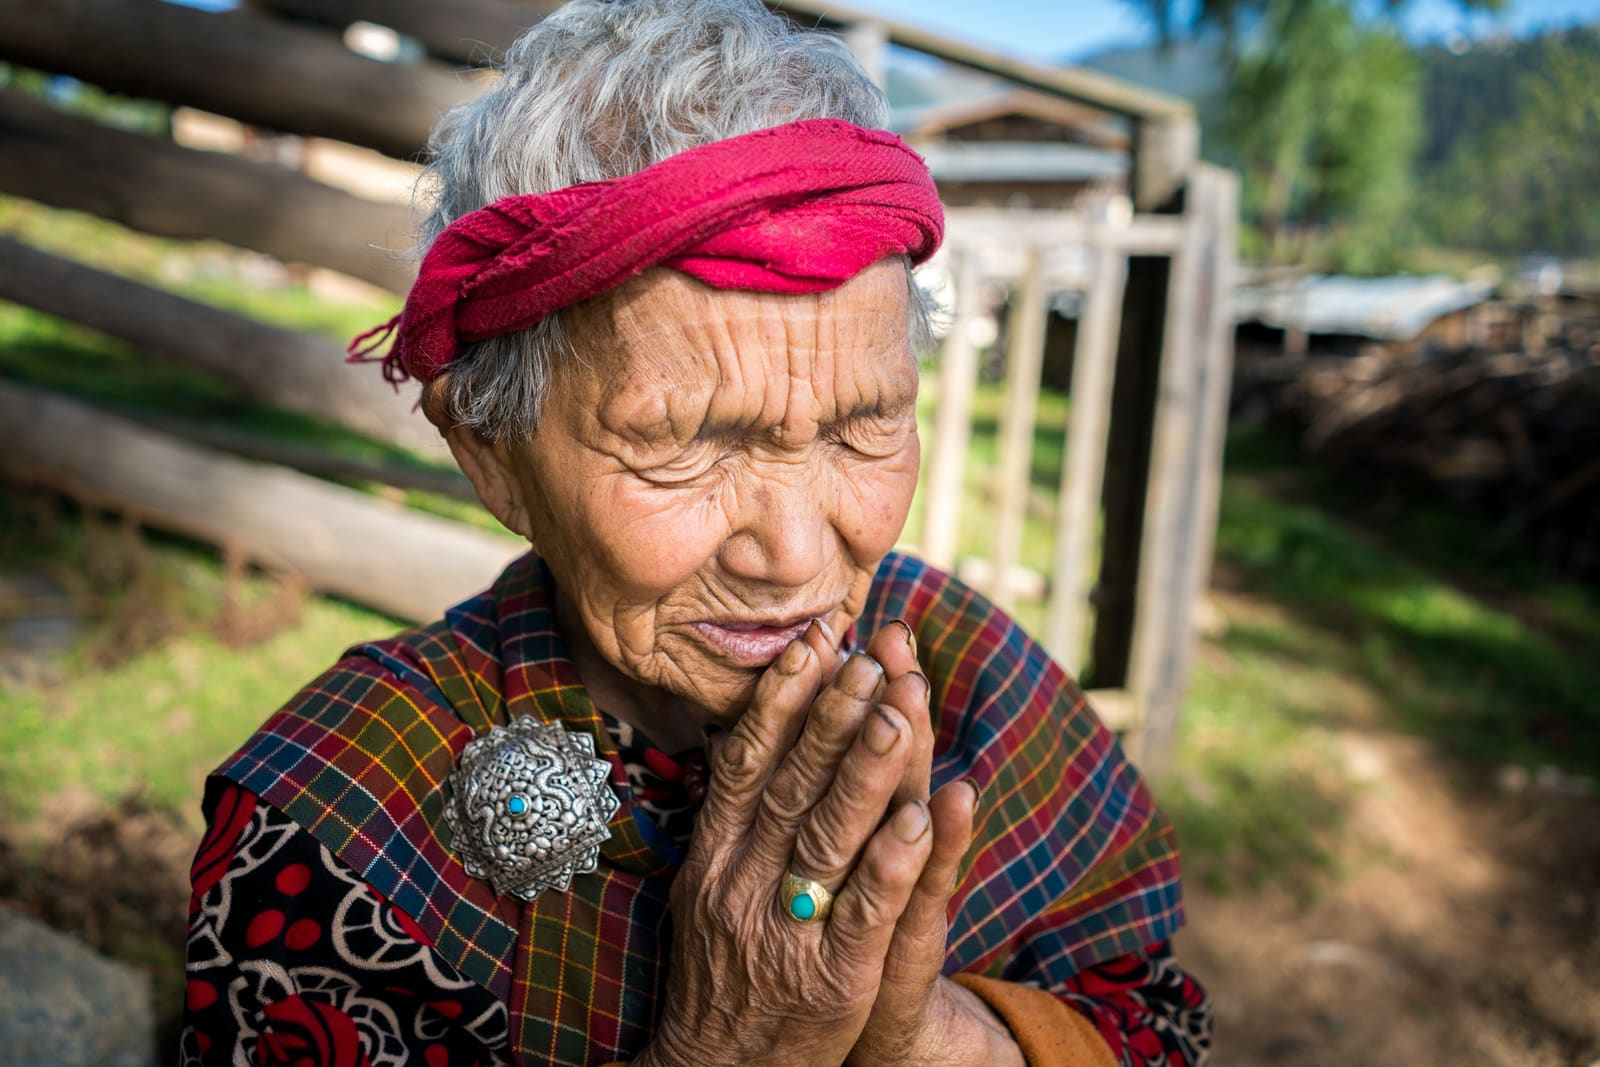 Stunning photos of Bhutan - Grandmother praying in Phobjikha Valley - Lost With Purpose travel blog